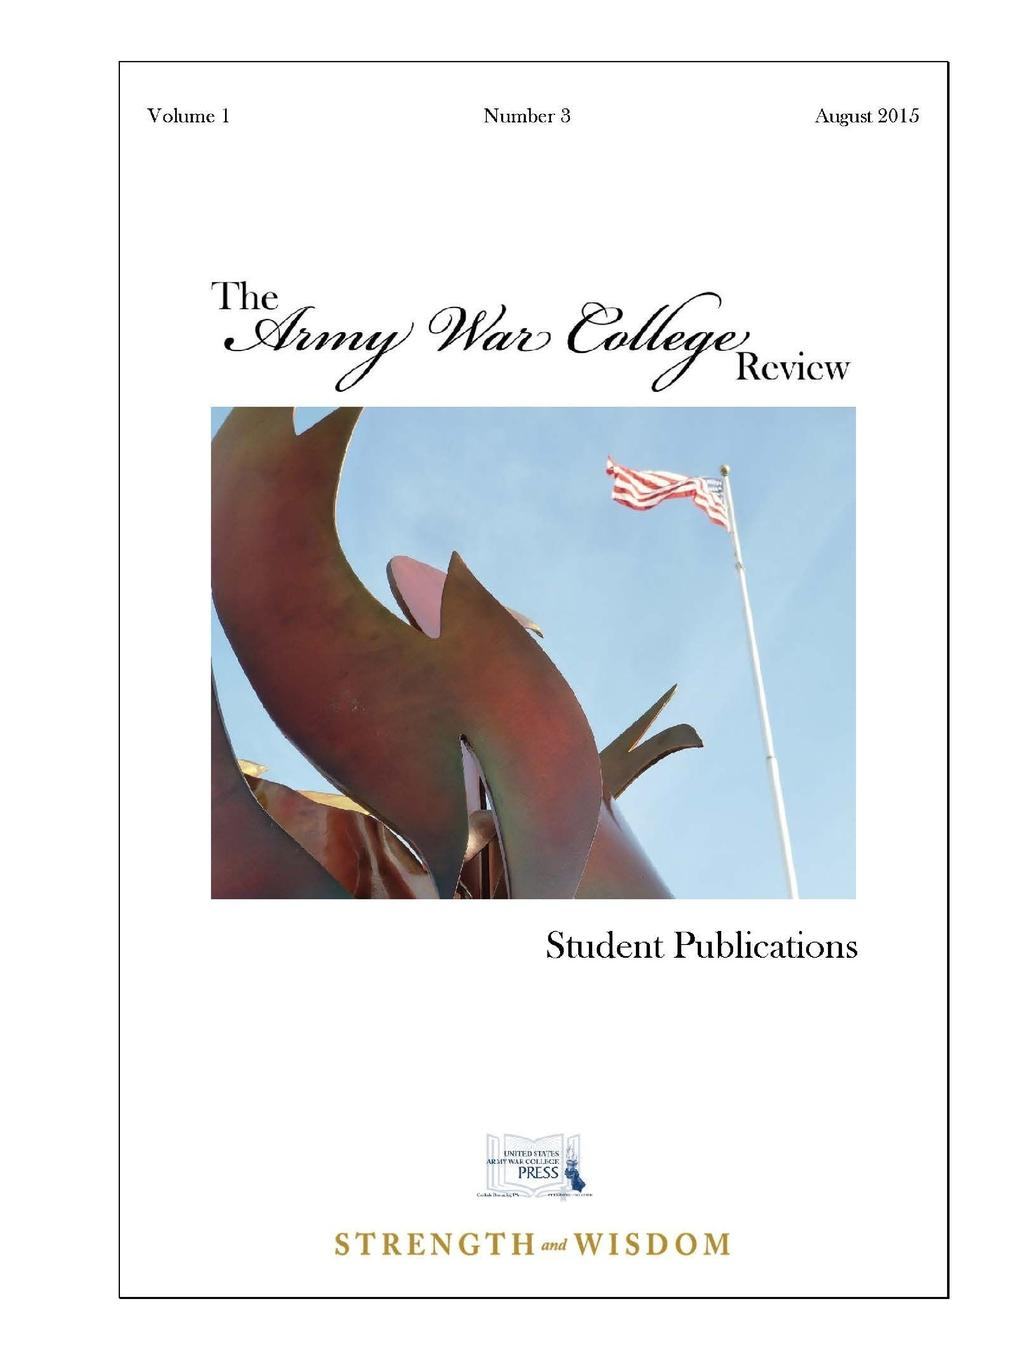 The United States Army War College The Army War College Review. Volume 1 - Number 3 new german review new german review a journal of germanic studies volume 25 2011